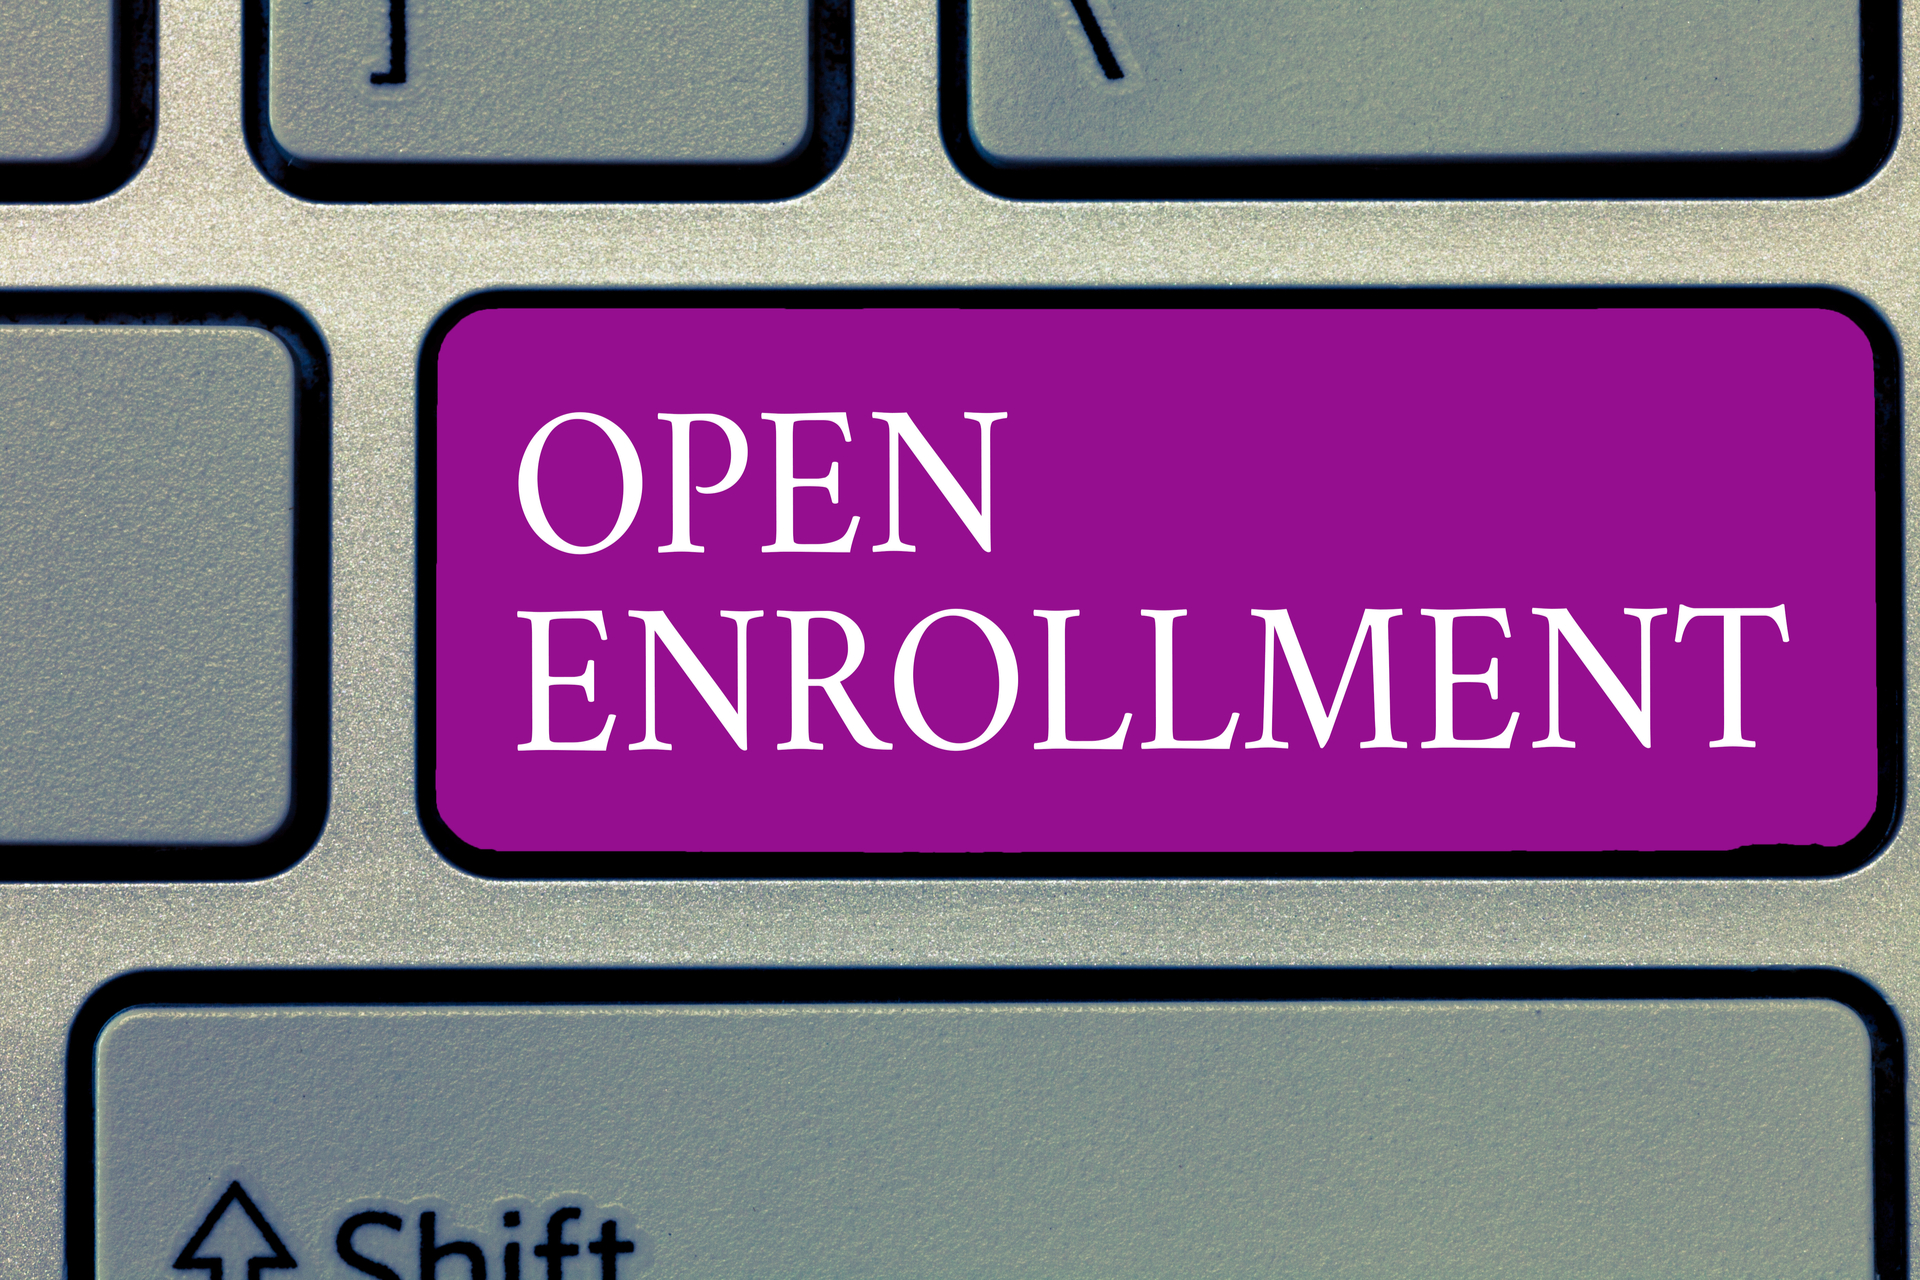 Lessons Learned from Open Enrollment During the Pandemic